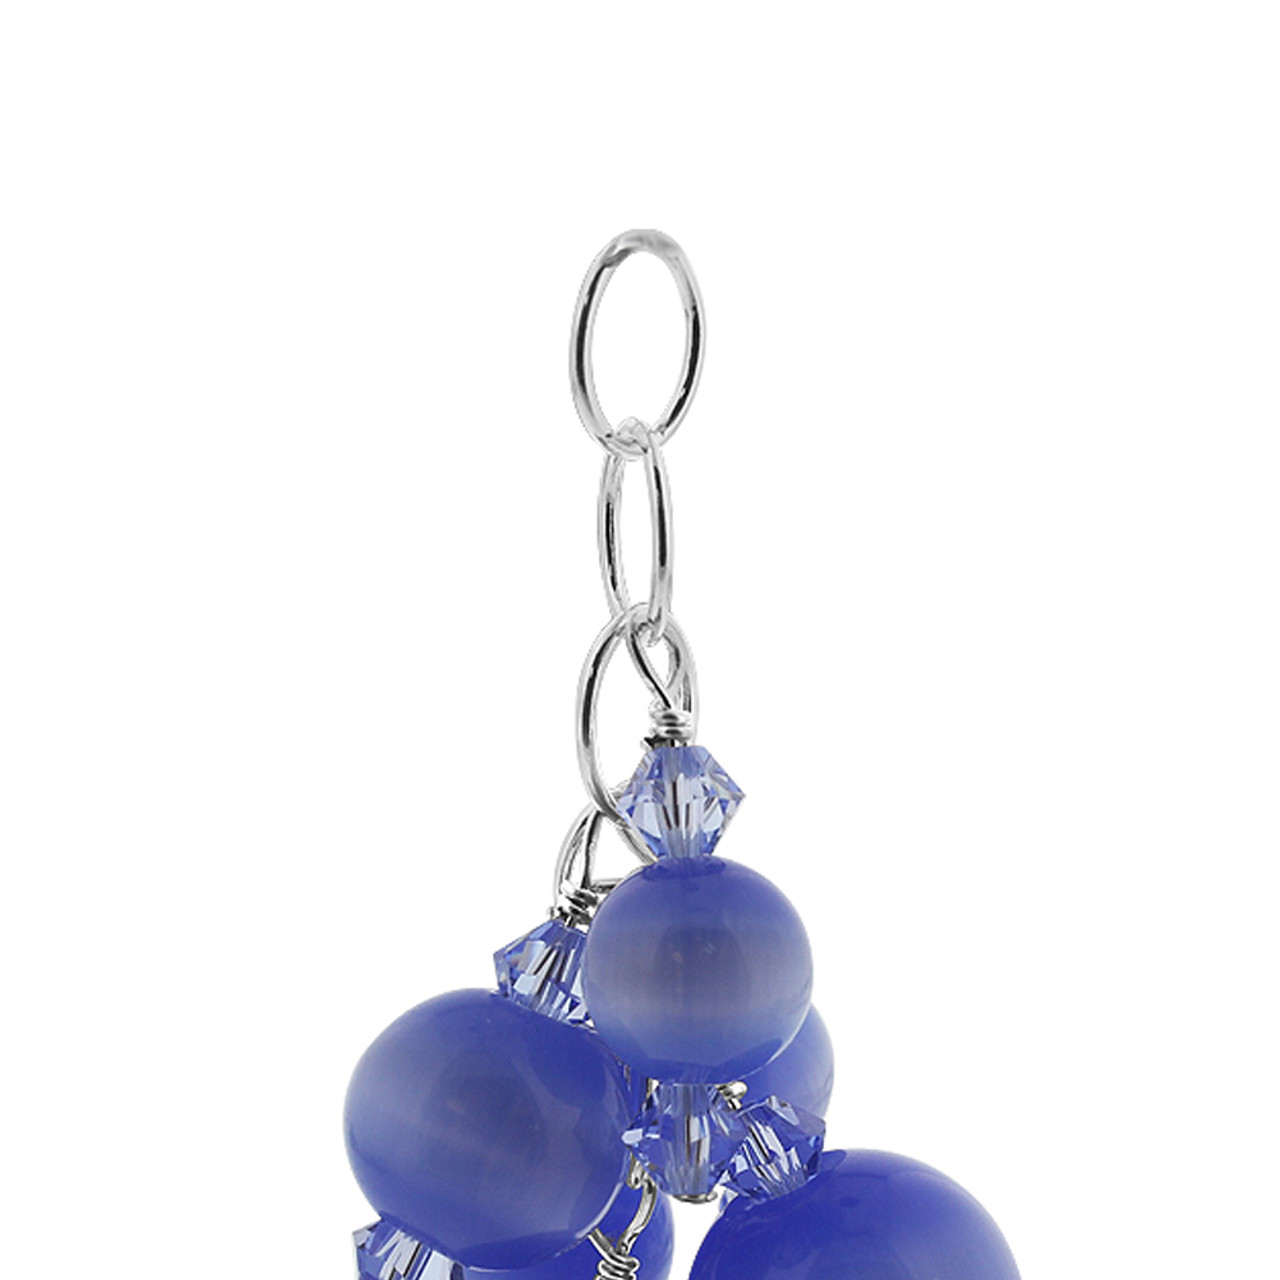 Blue Cats Eye Crystal Sterling Silver Charm Pendant